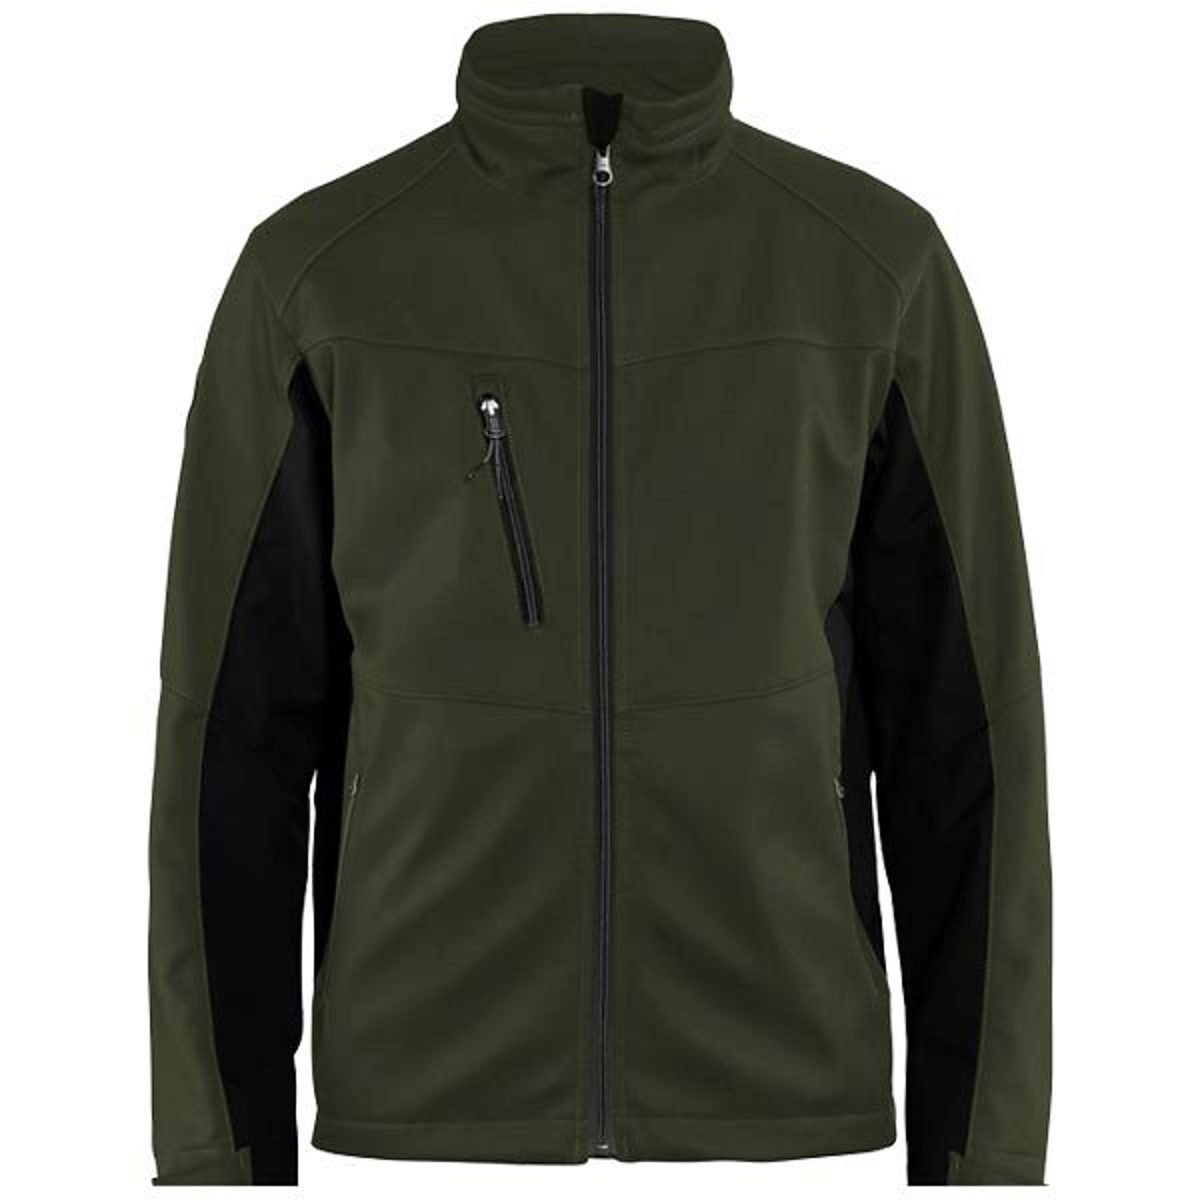 Blaklader Workwear Softshell Jacket Dark Olive Green//Black S